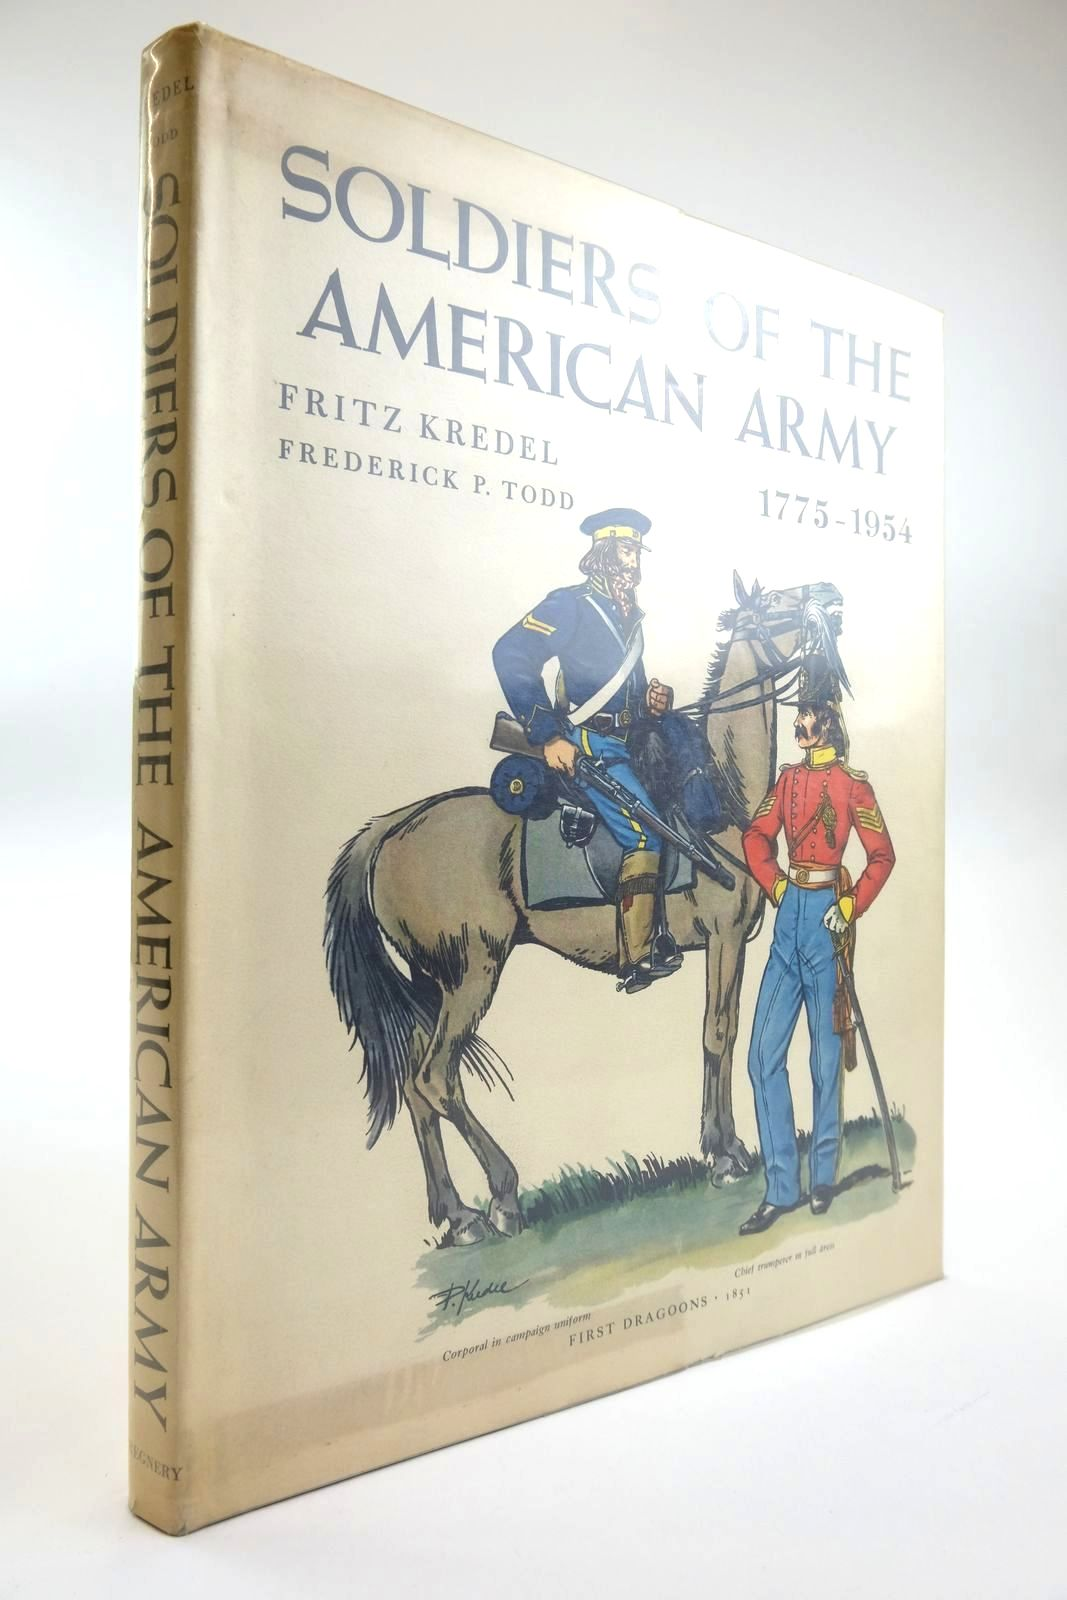 Photo of SOLDIERS OF THE AMERICAN ARMY 1775 - 1954 written by Kredel, Fritz Todd, Frederick P. illustrated by Kredel, Fritz published by Henry Regnery Company (STOCK CODE: 2133478)  for sale by Stella & Rose's Books